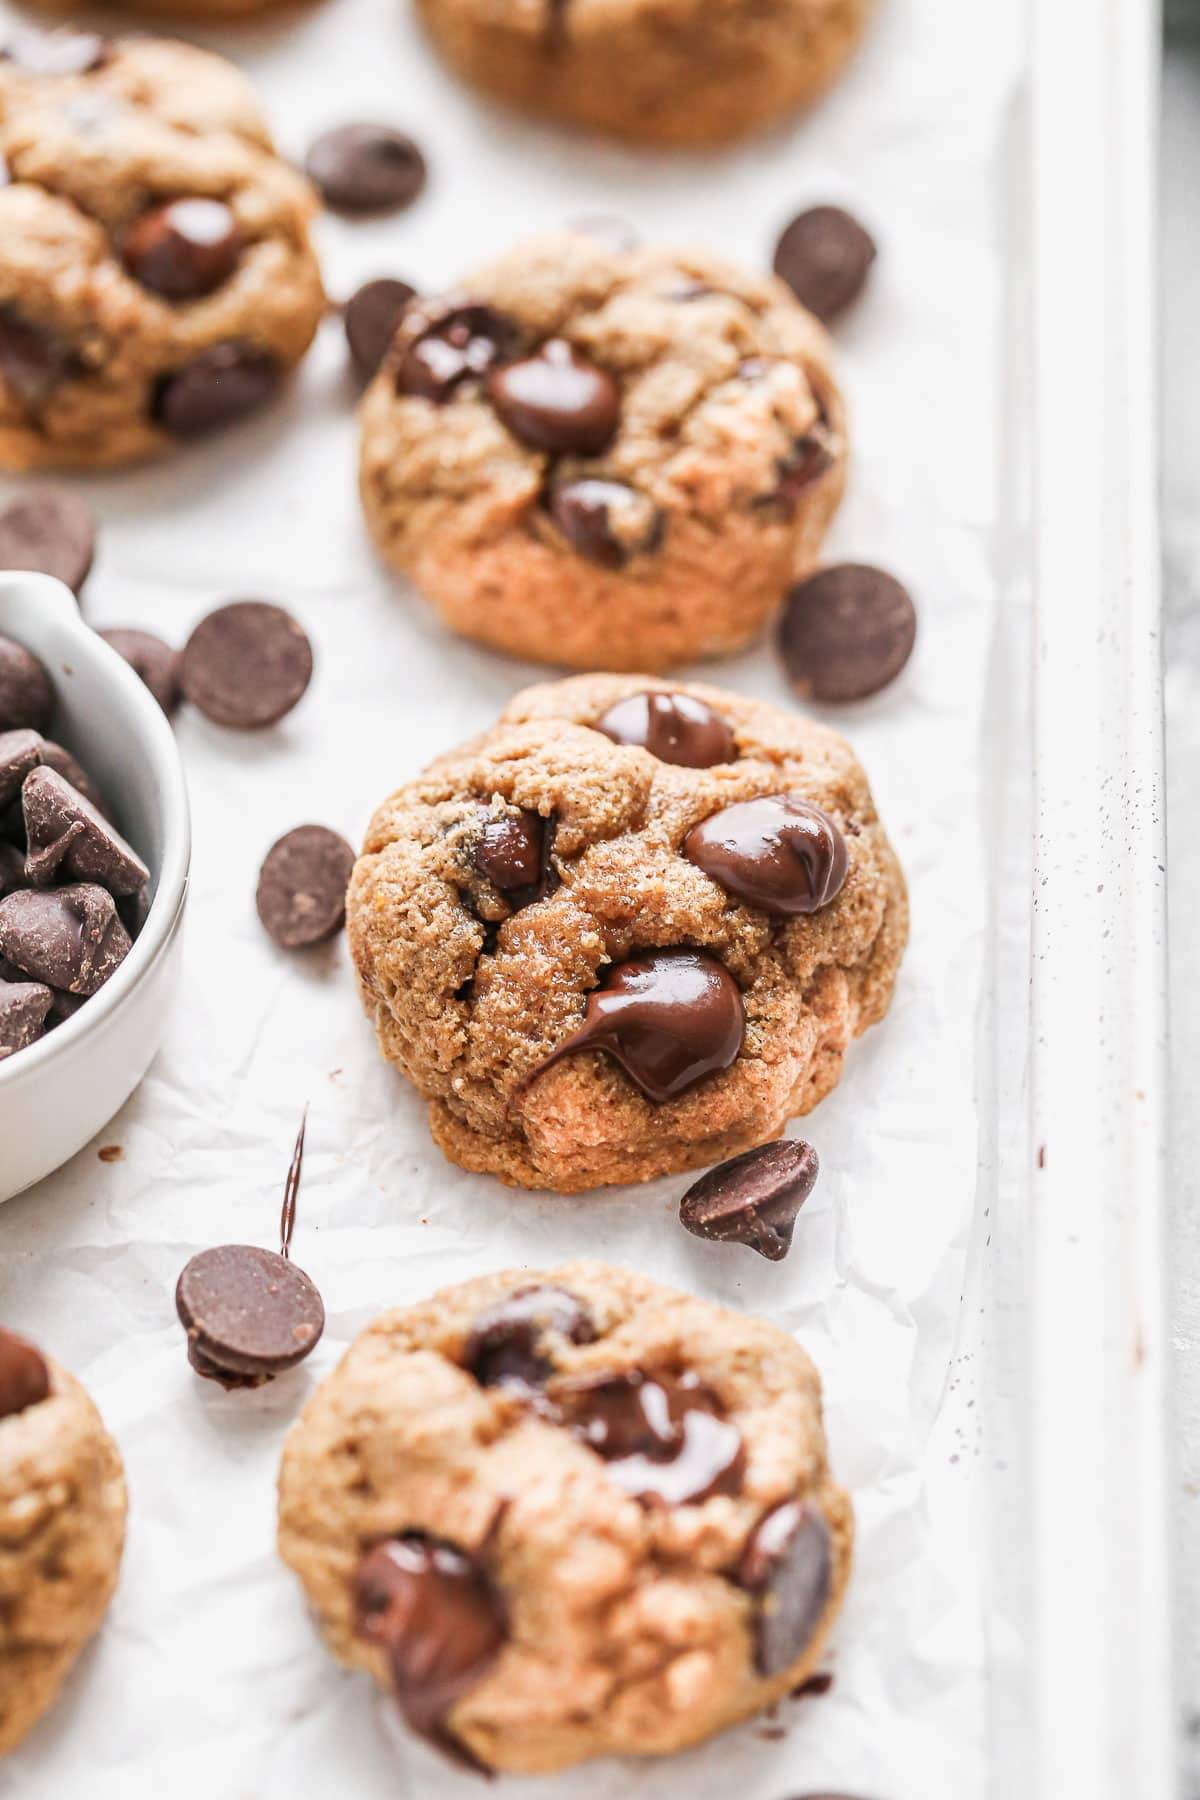 Healthy chocolate chip cookies on a tray